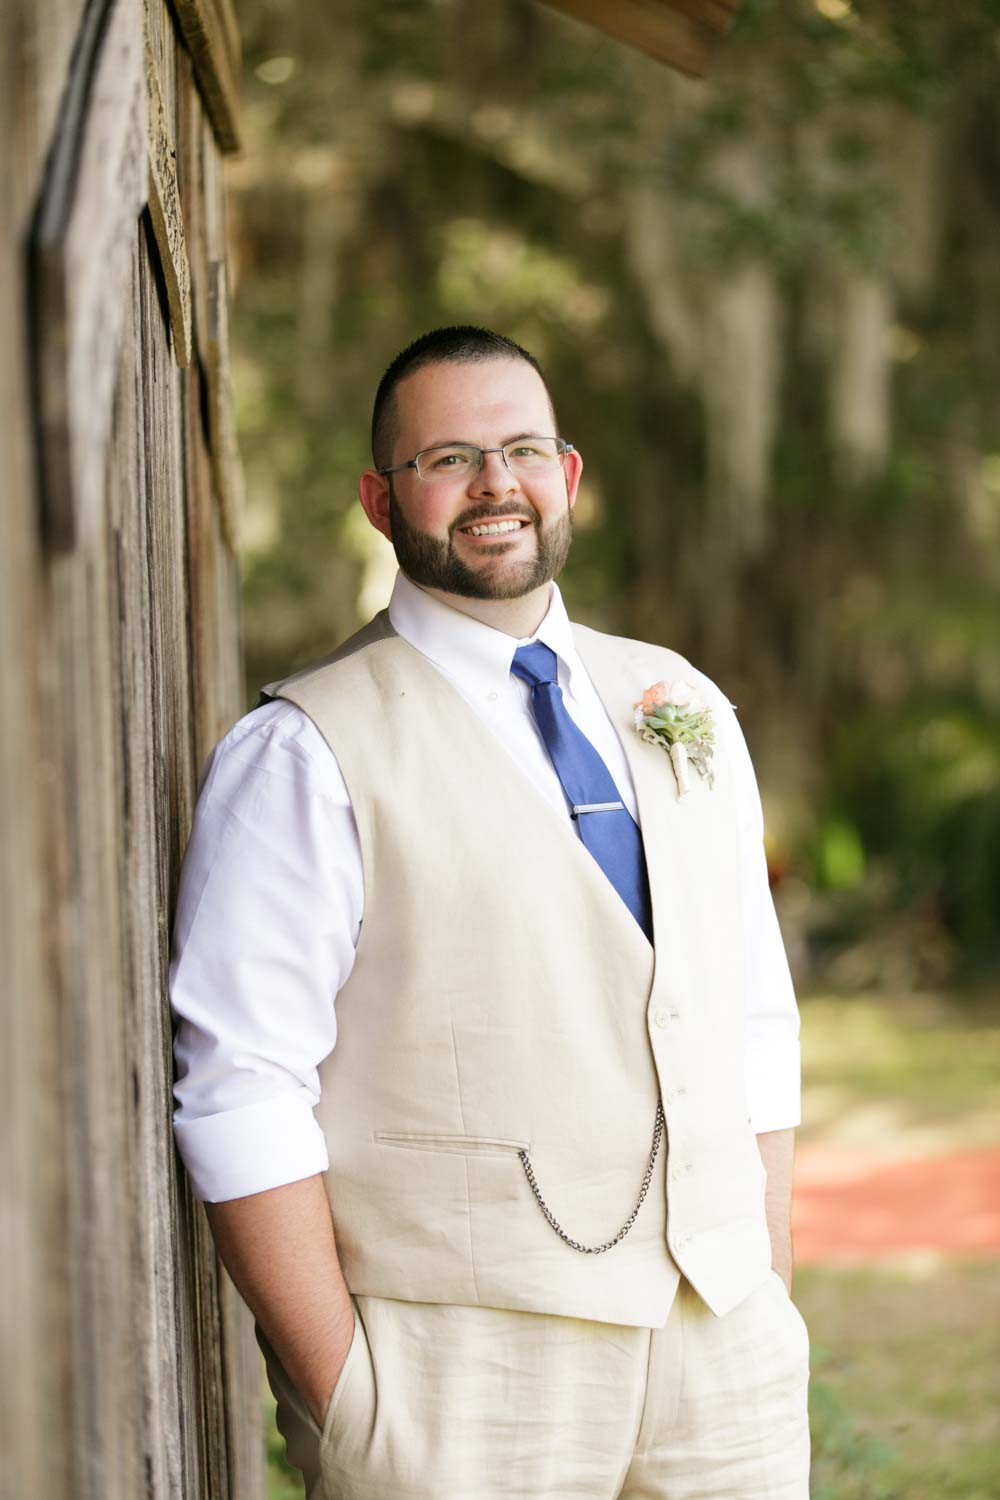 groom in khaki vest and blue tie smiling by wood fence